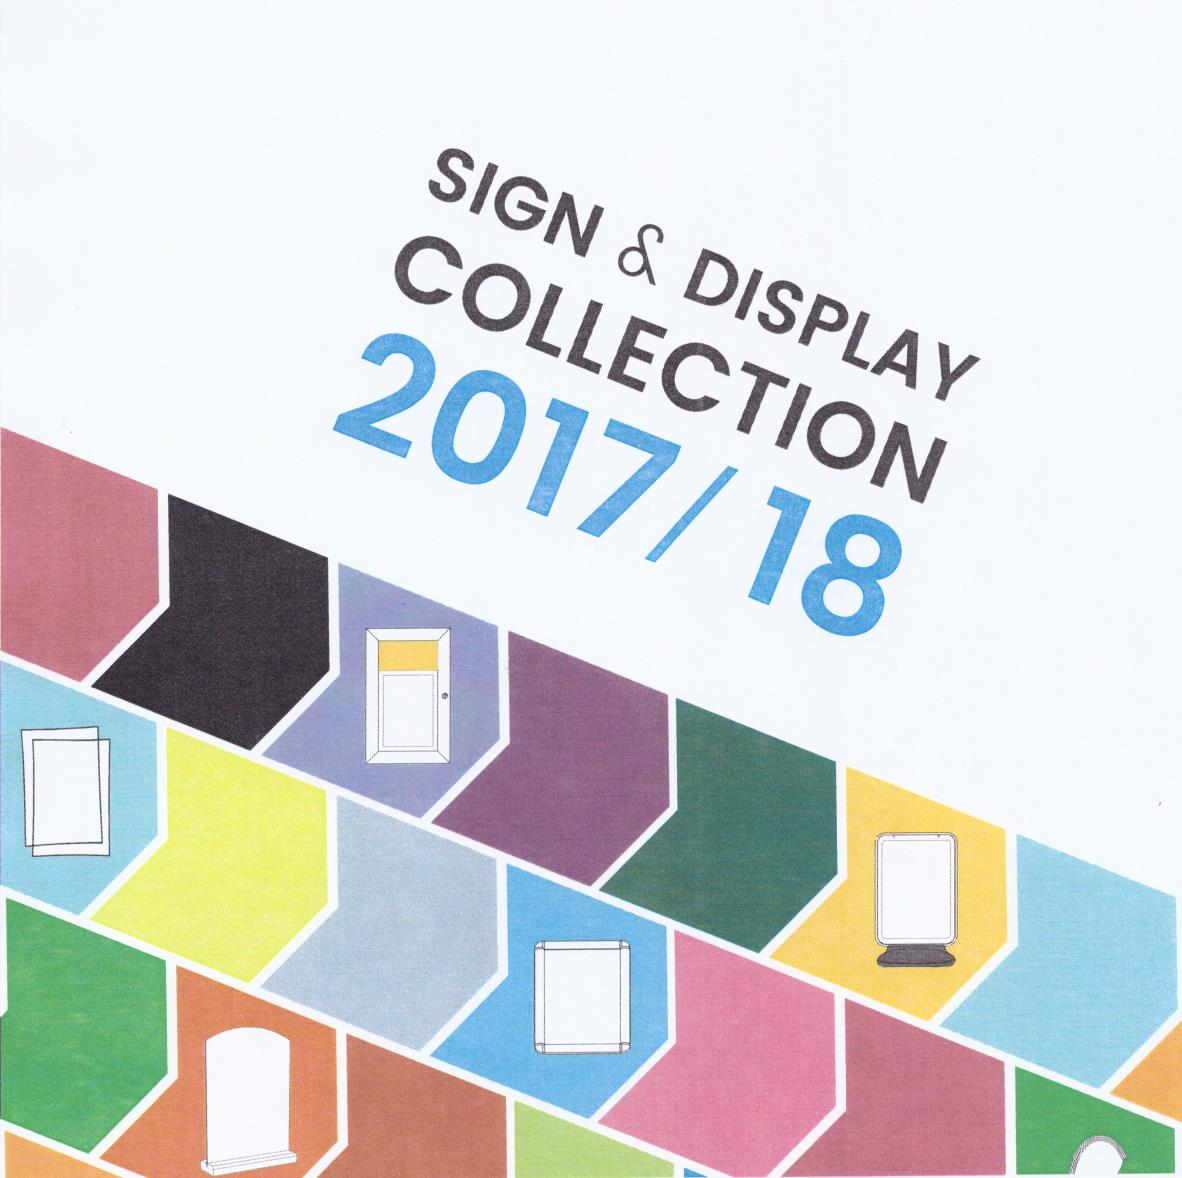 Sign--Display-Collection-2017.jpg